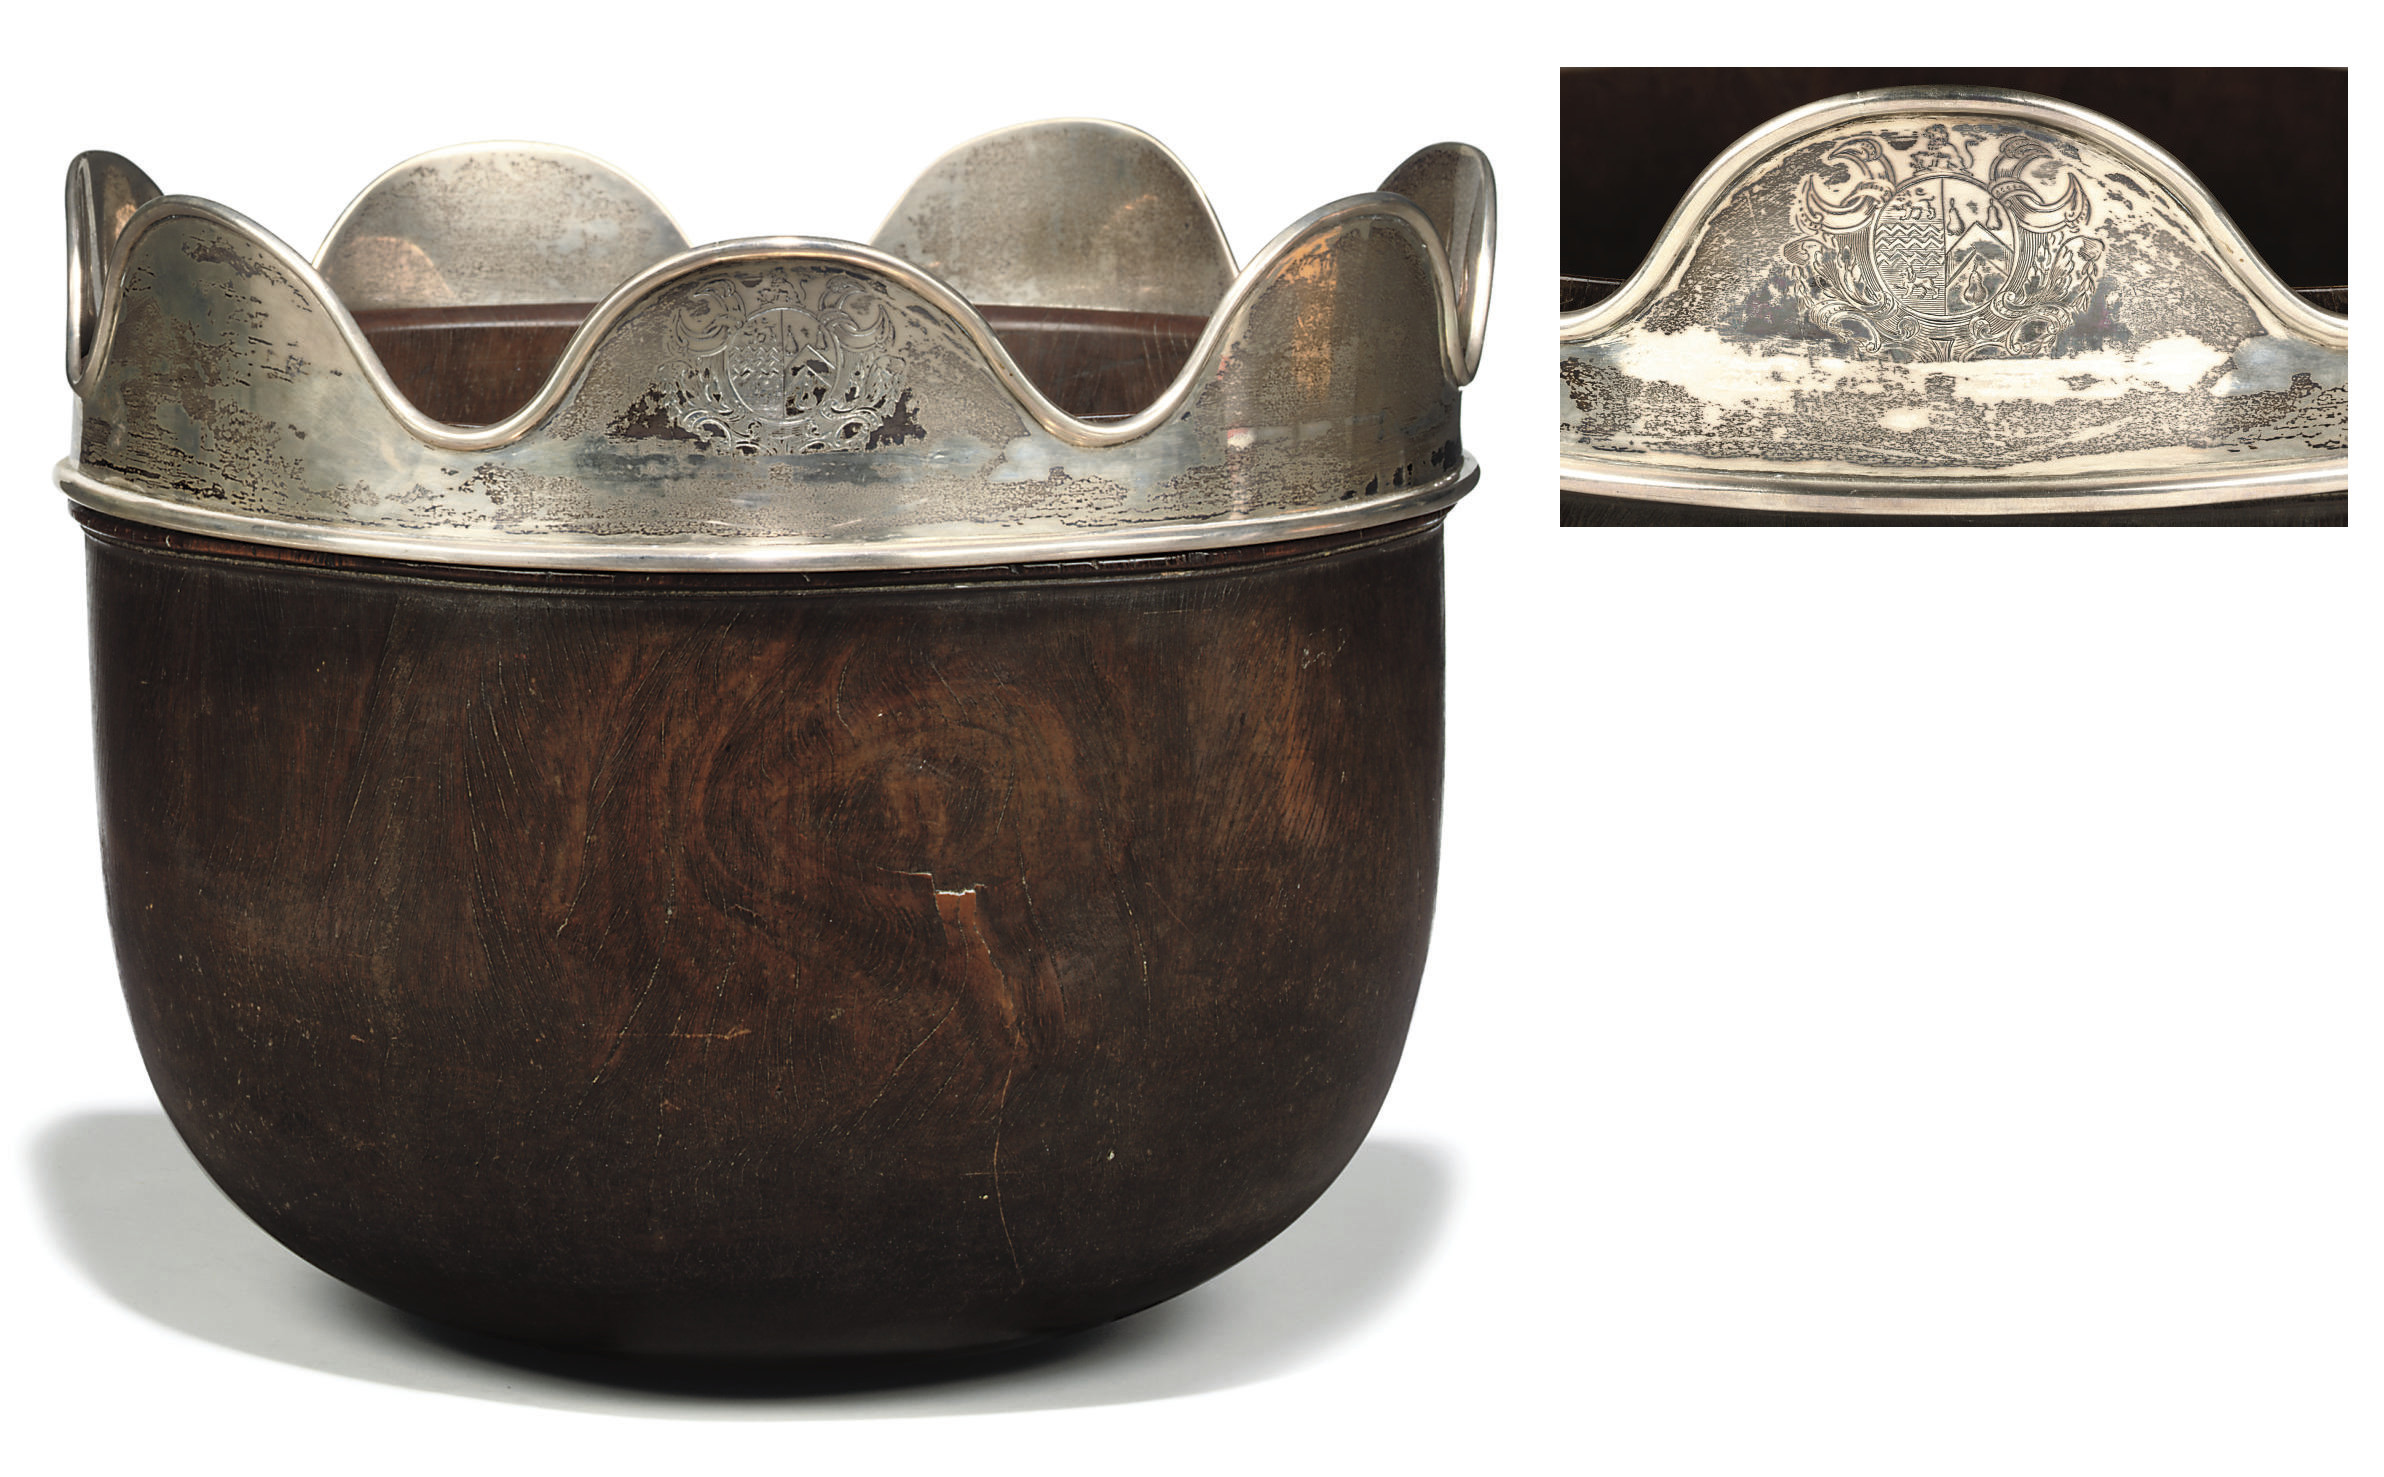 A GEORGE II SILVER-MOUNTED LIGNUM VITAE WASSAIL BOWL